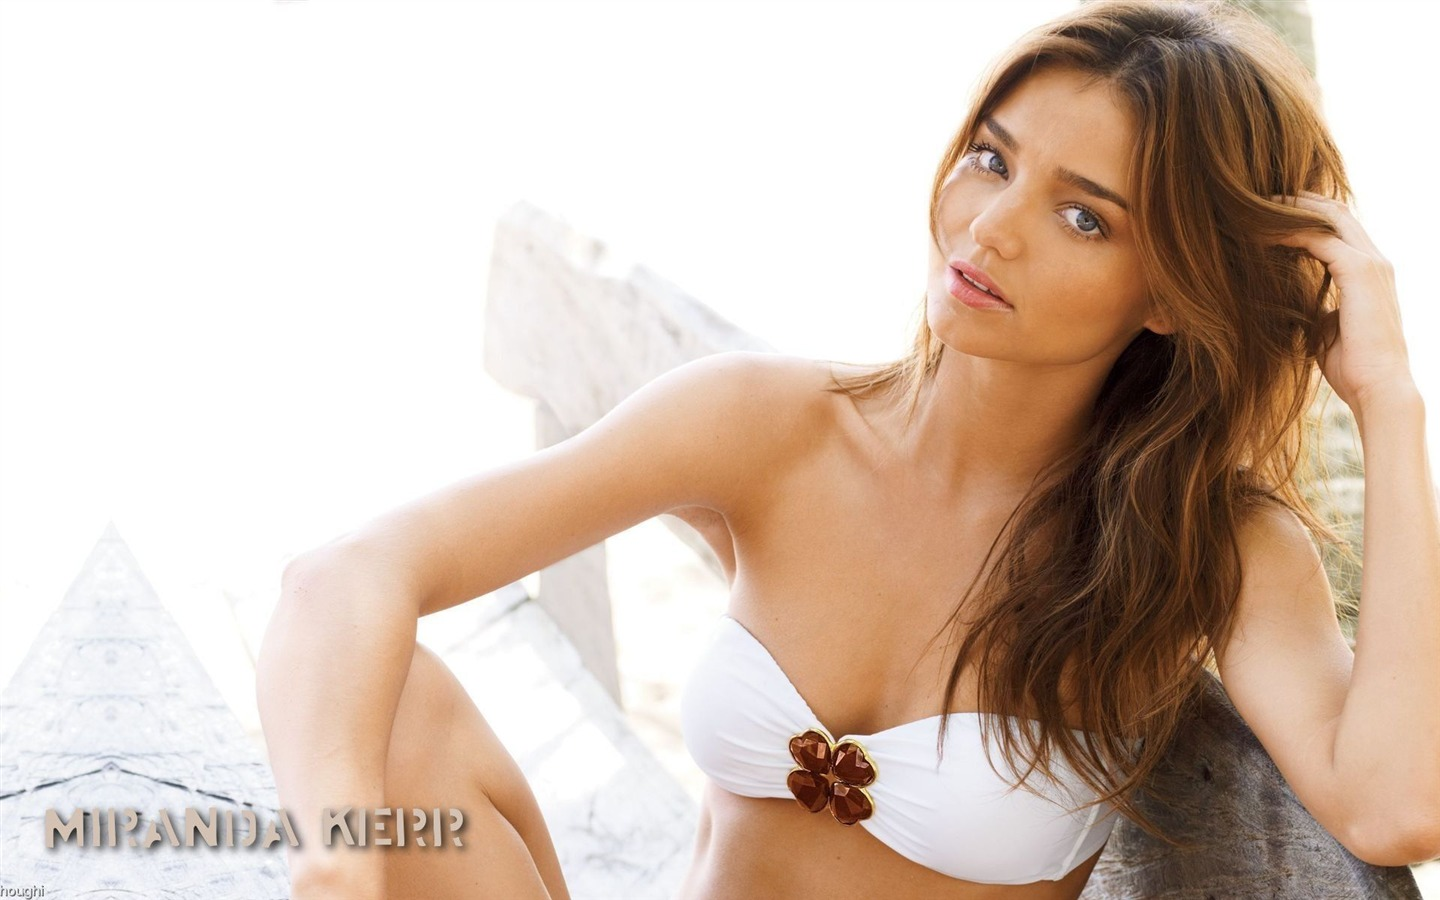 Miranda Kerr #026 - 1440x900 Wallpapers Pictures Photos Images